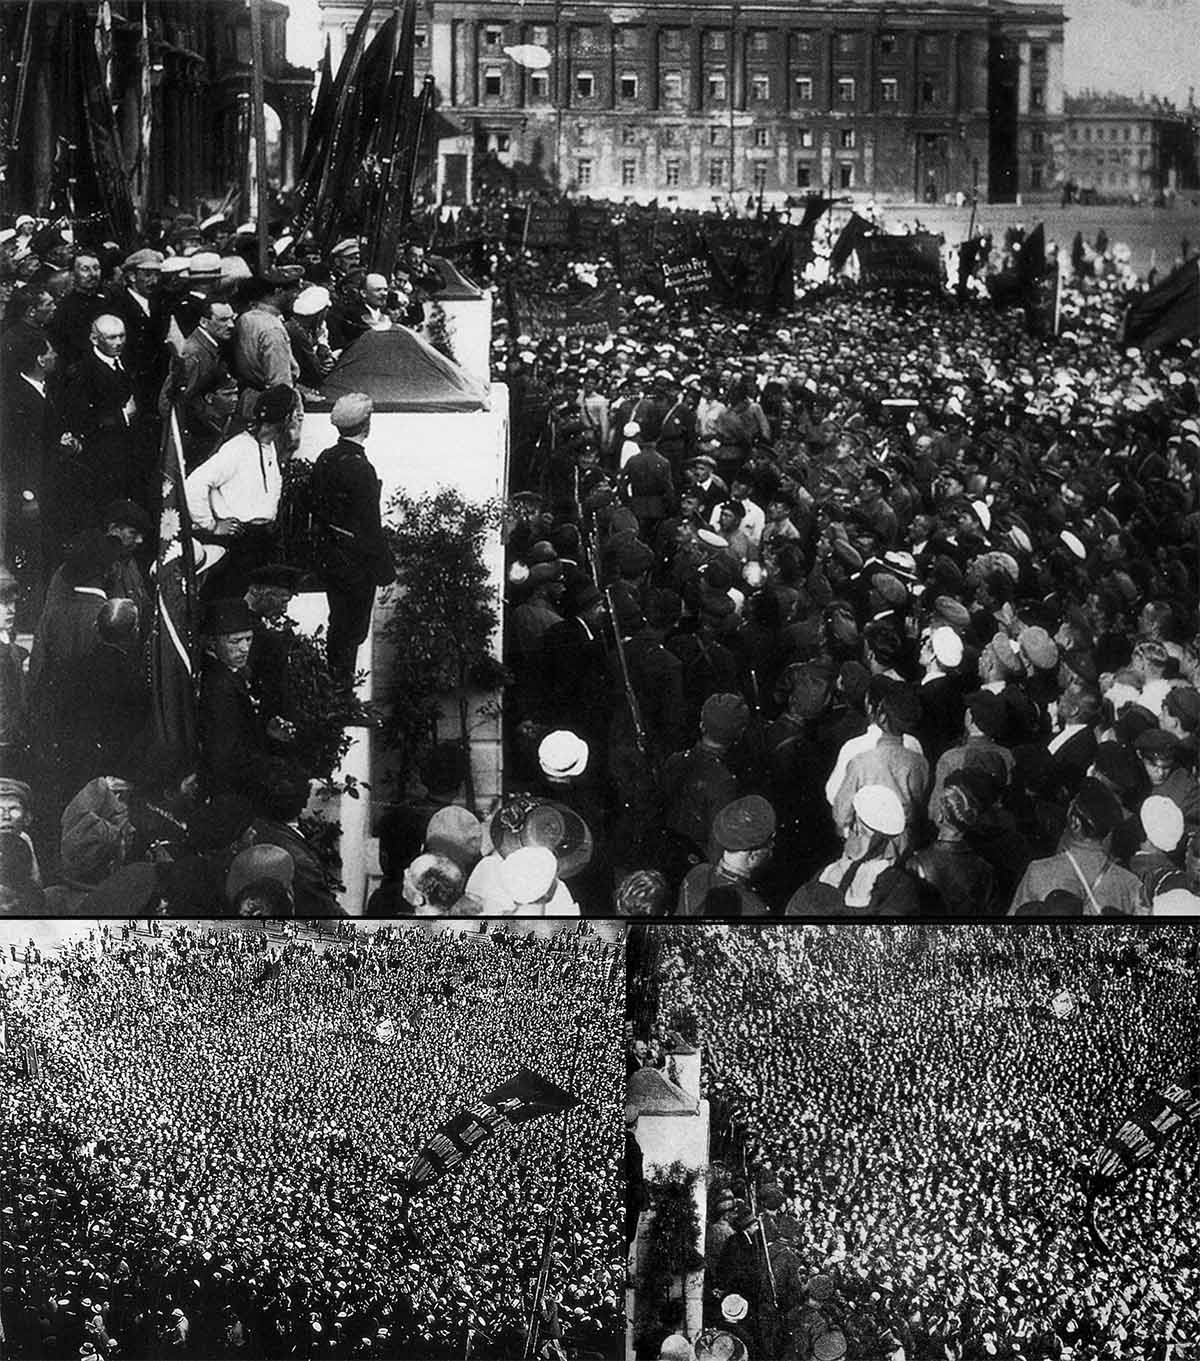 Here's another case of embellishing a picture with extra details. Lenin was speaking to a crowd in 1920 but four years later, before publishing the image, the editors decided to make his audience bigger – so they used a larger crowd from another photo.